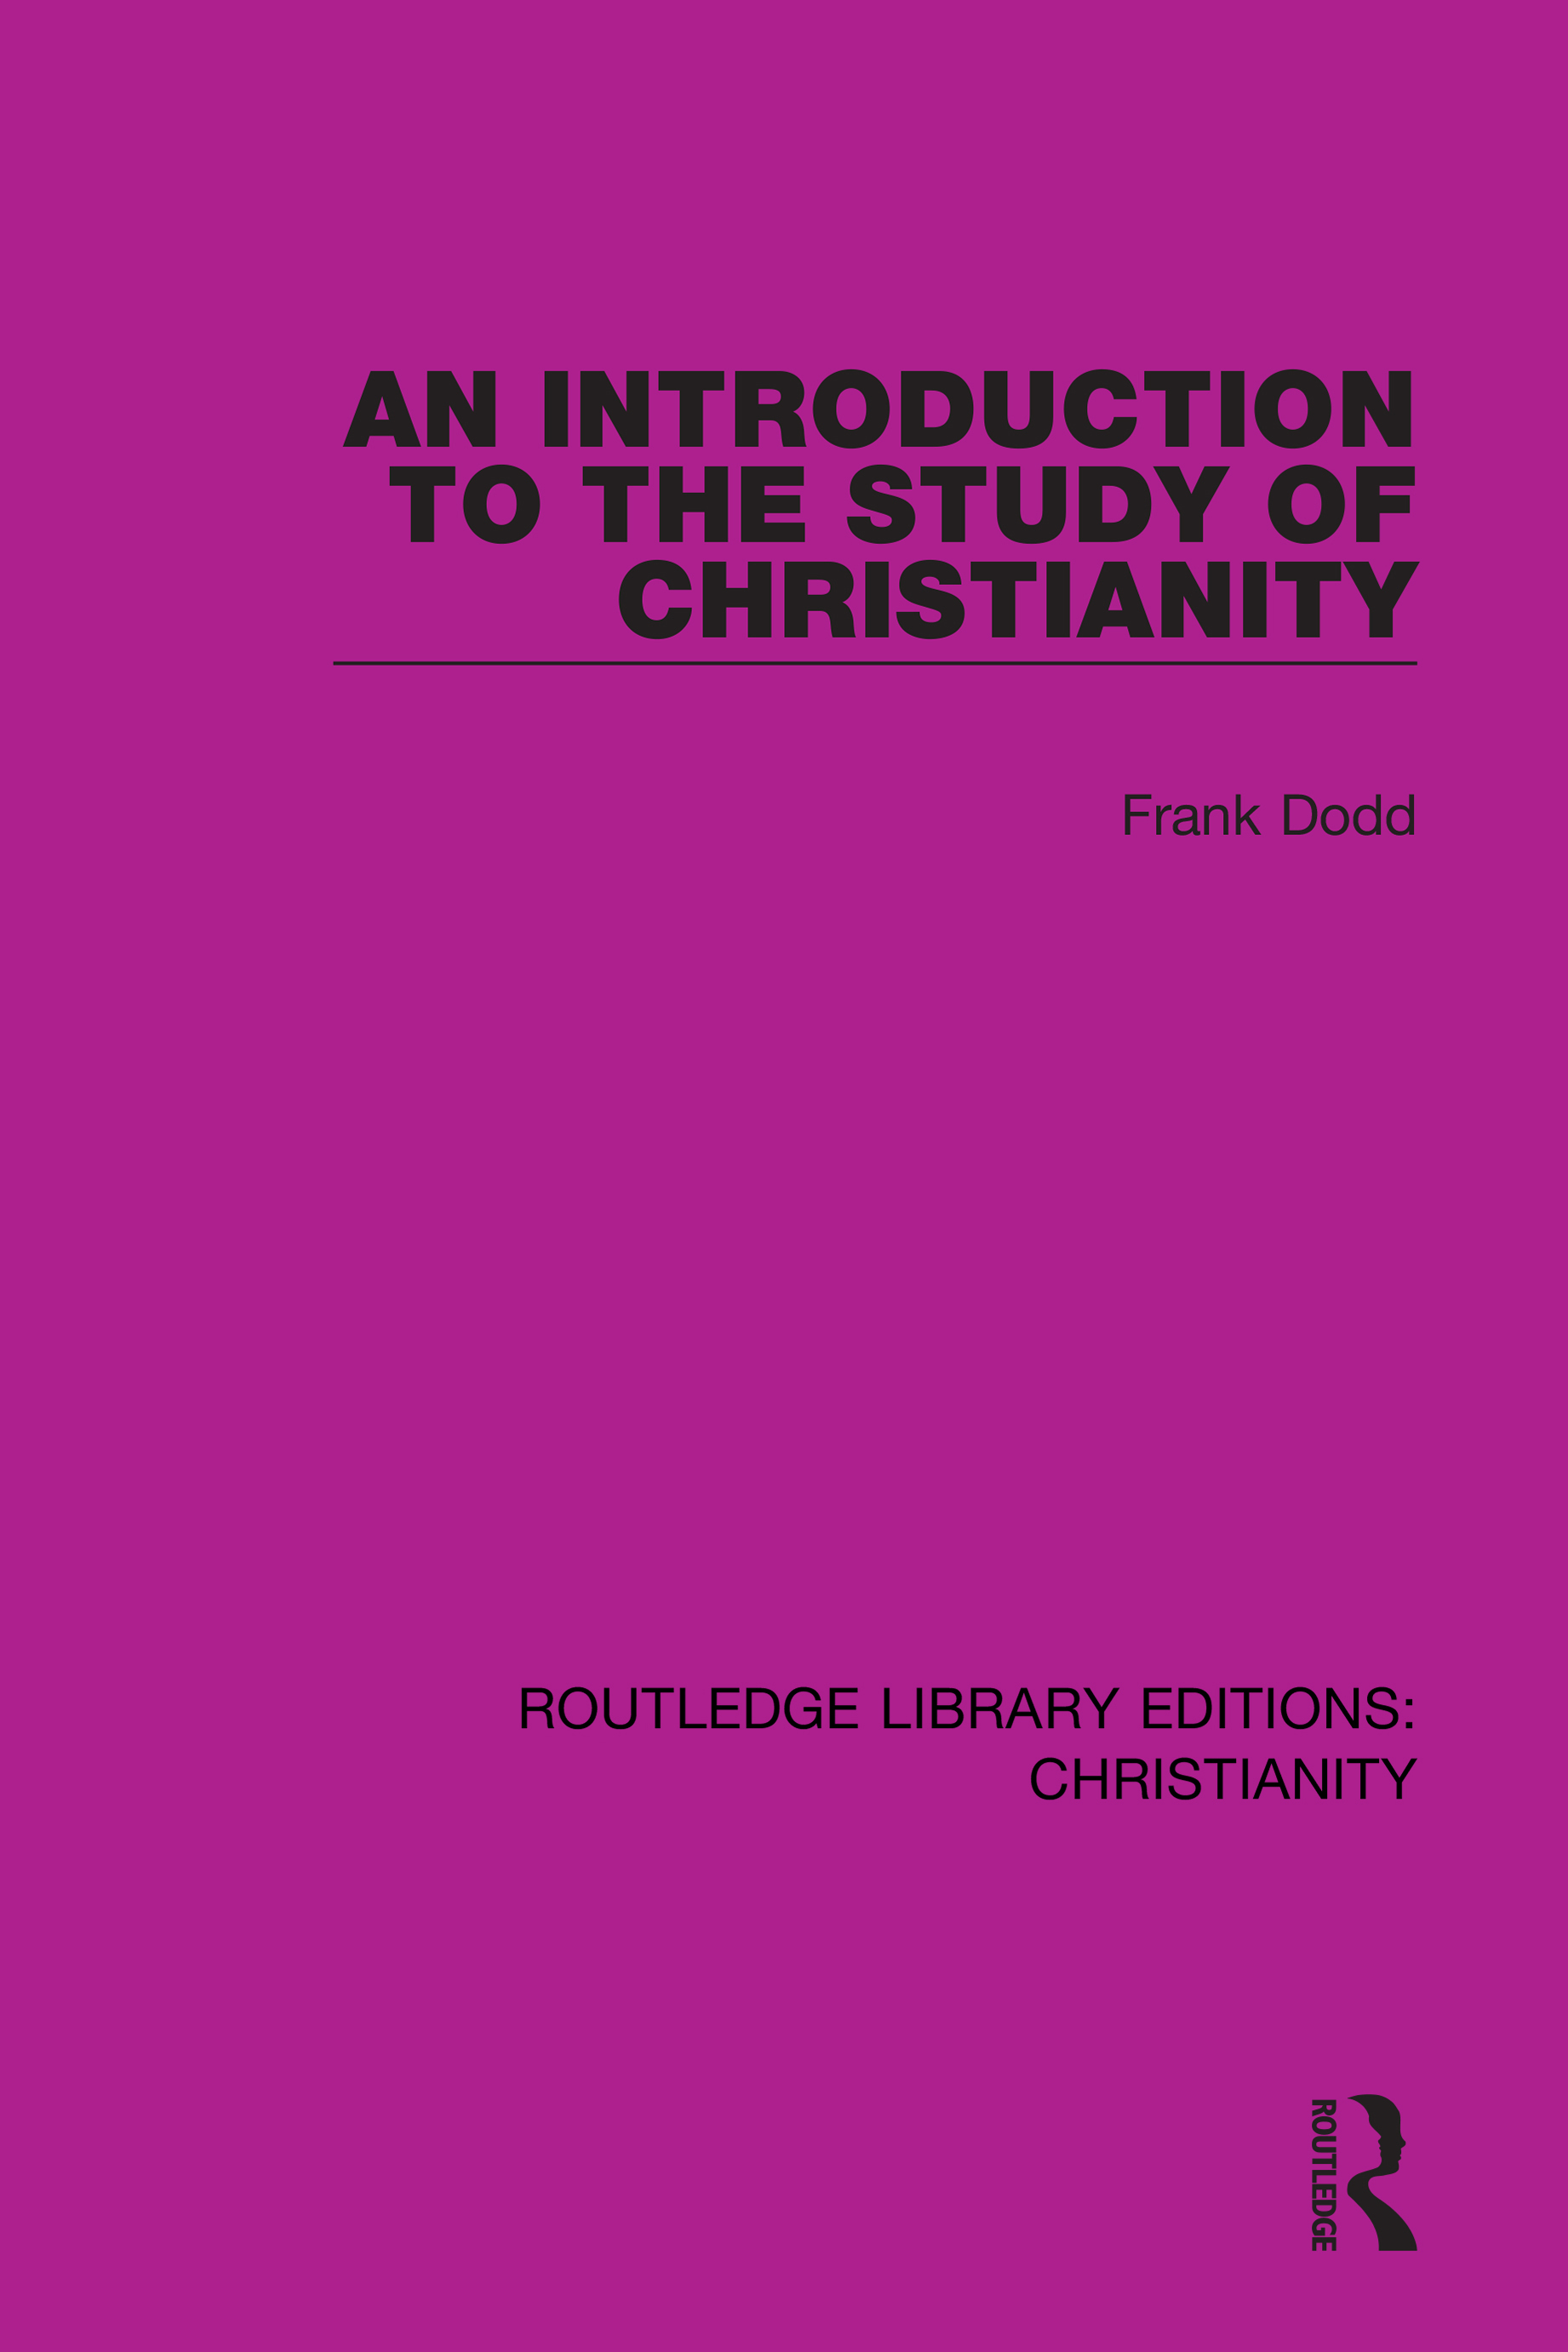 An Introduction to the Study of Christianity